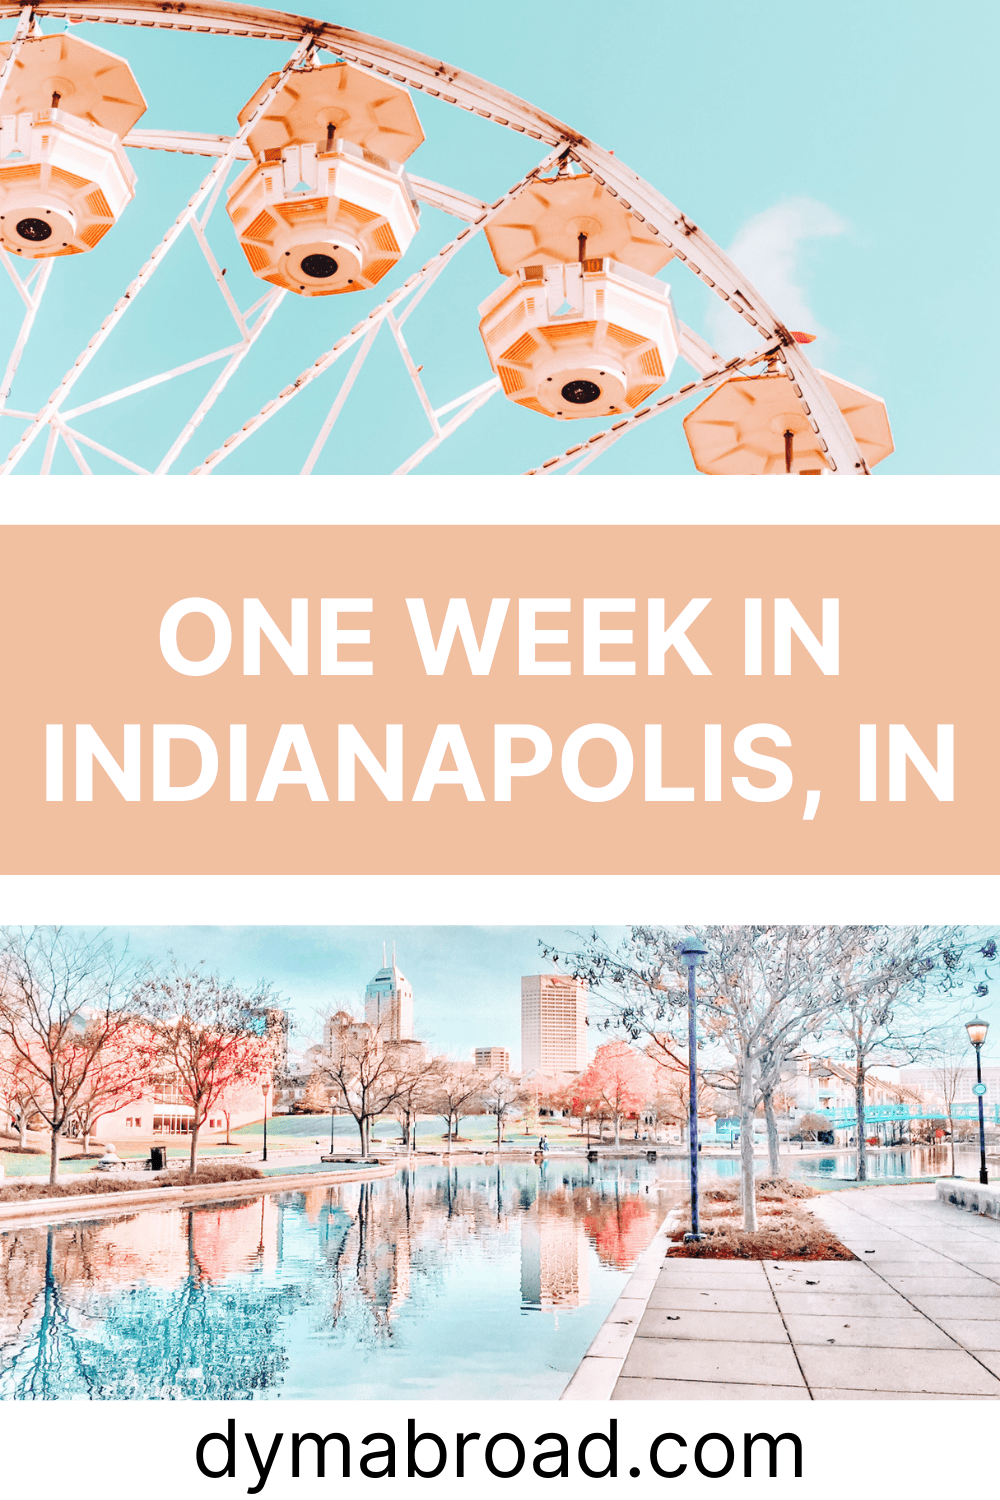 One week in Indianapolis second Pinterest image